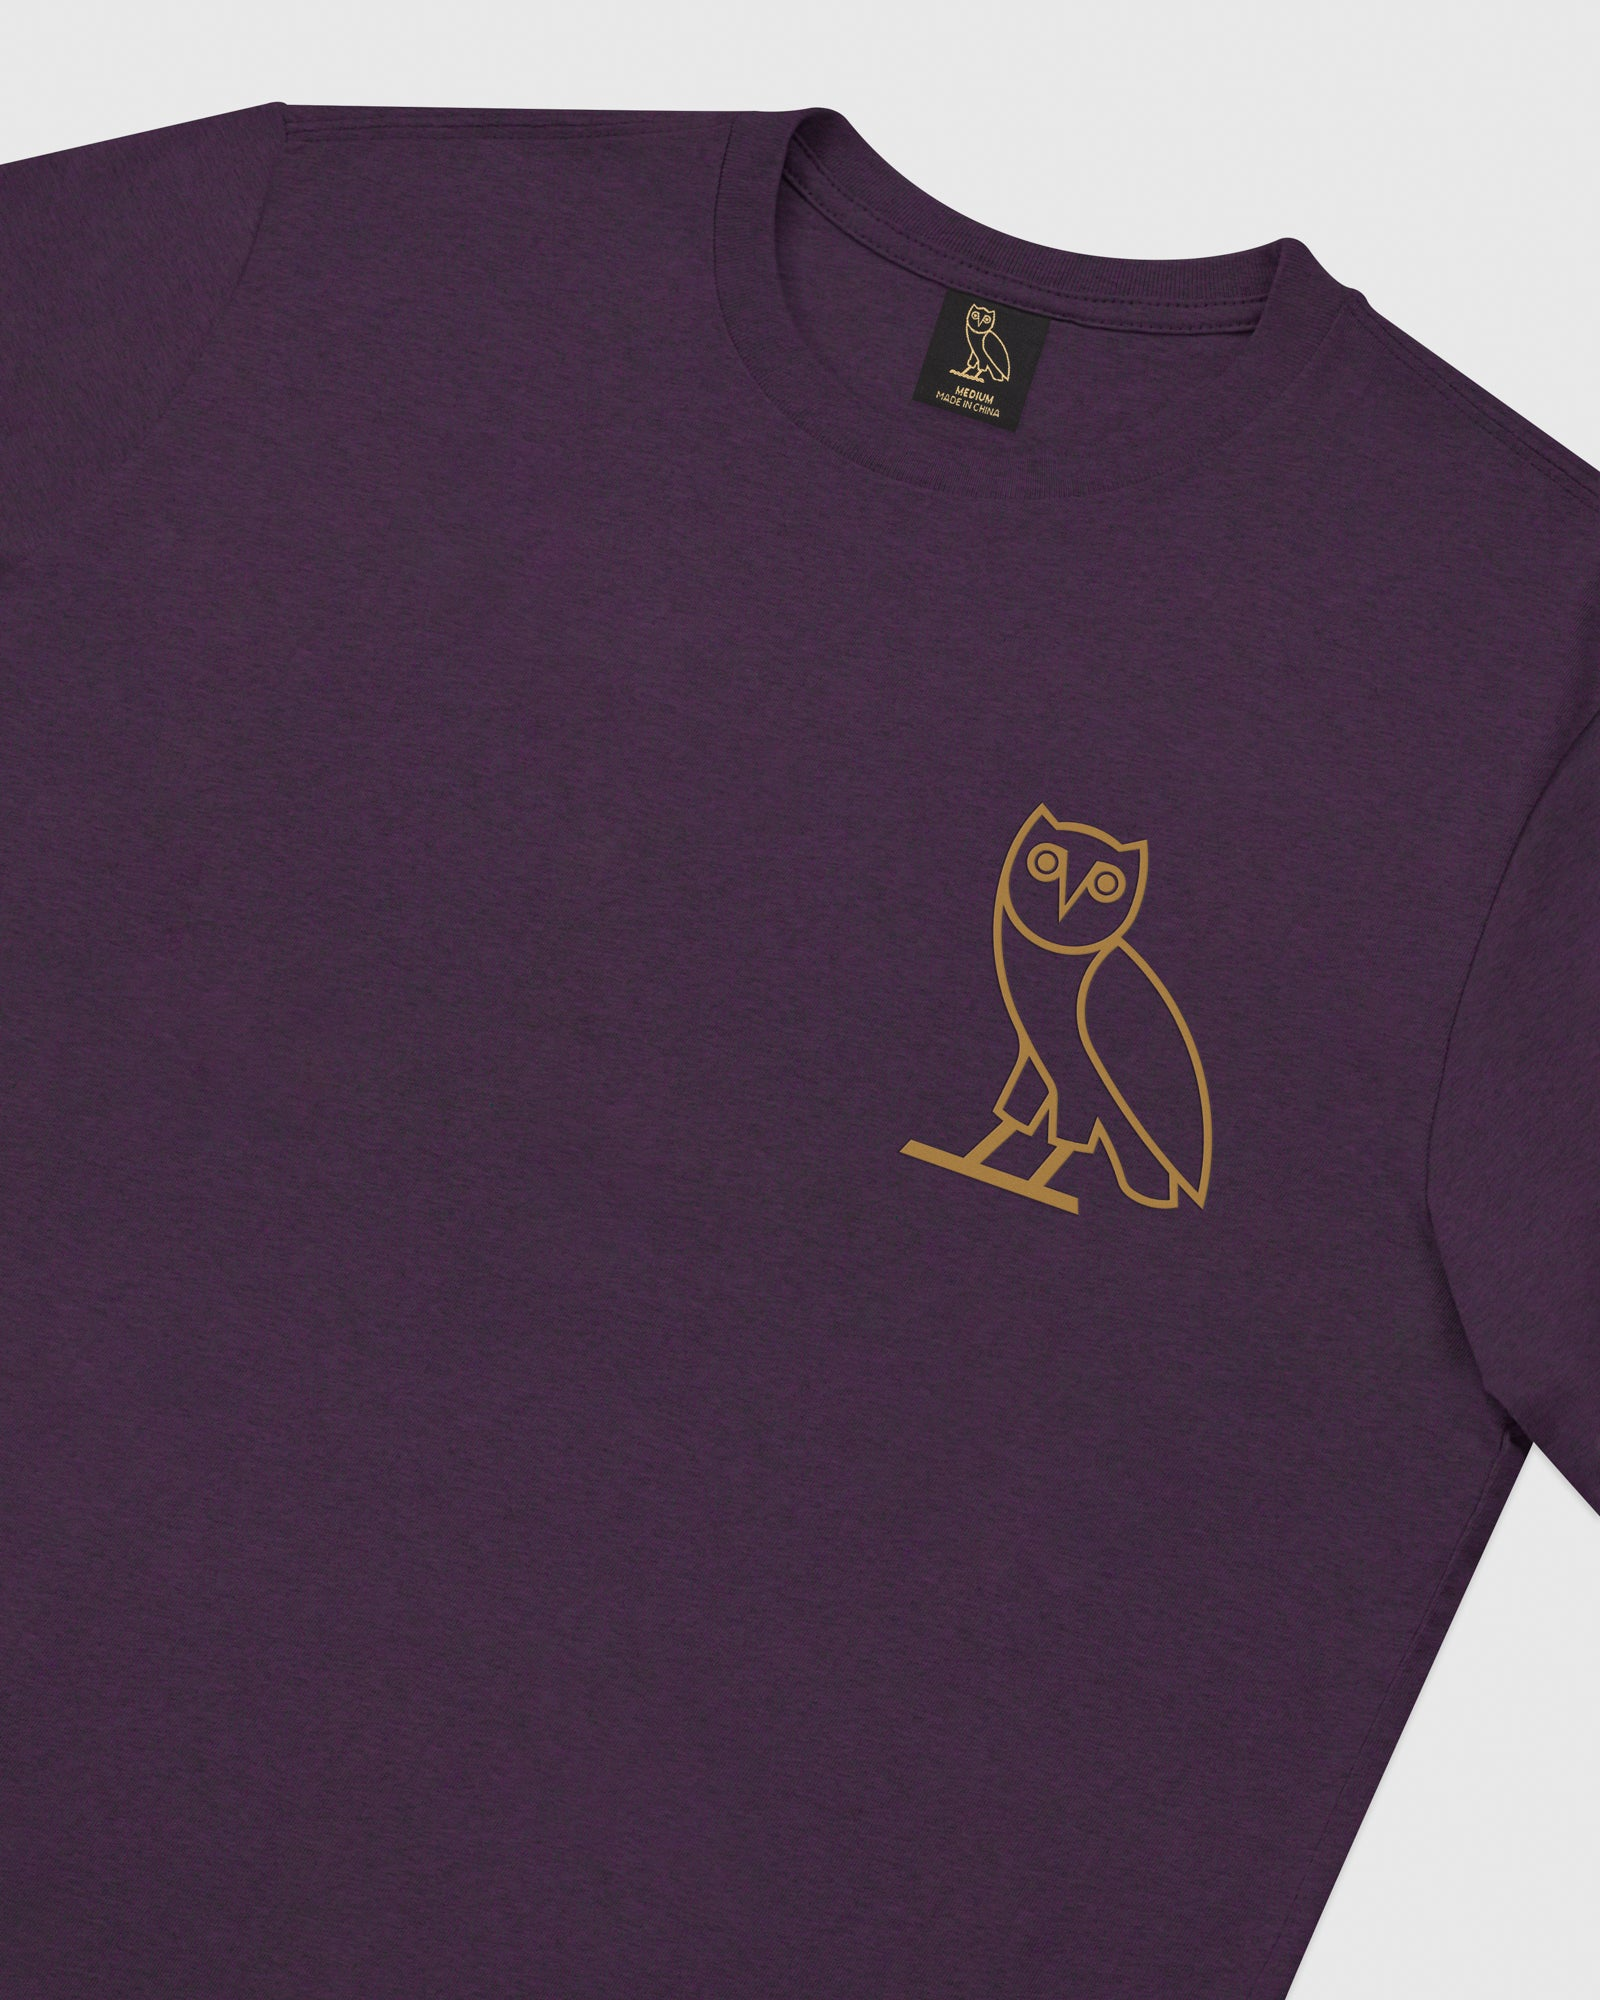 OWL LONGSLEEVE T-SHIRT - HEATHER PURPLE IMAGE #3